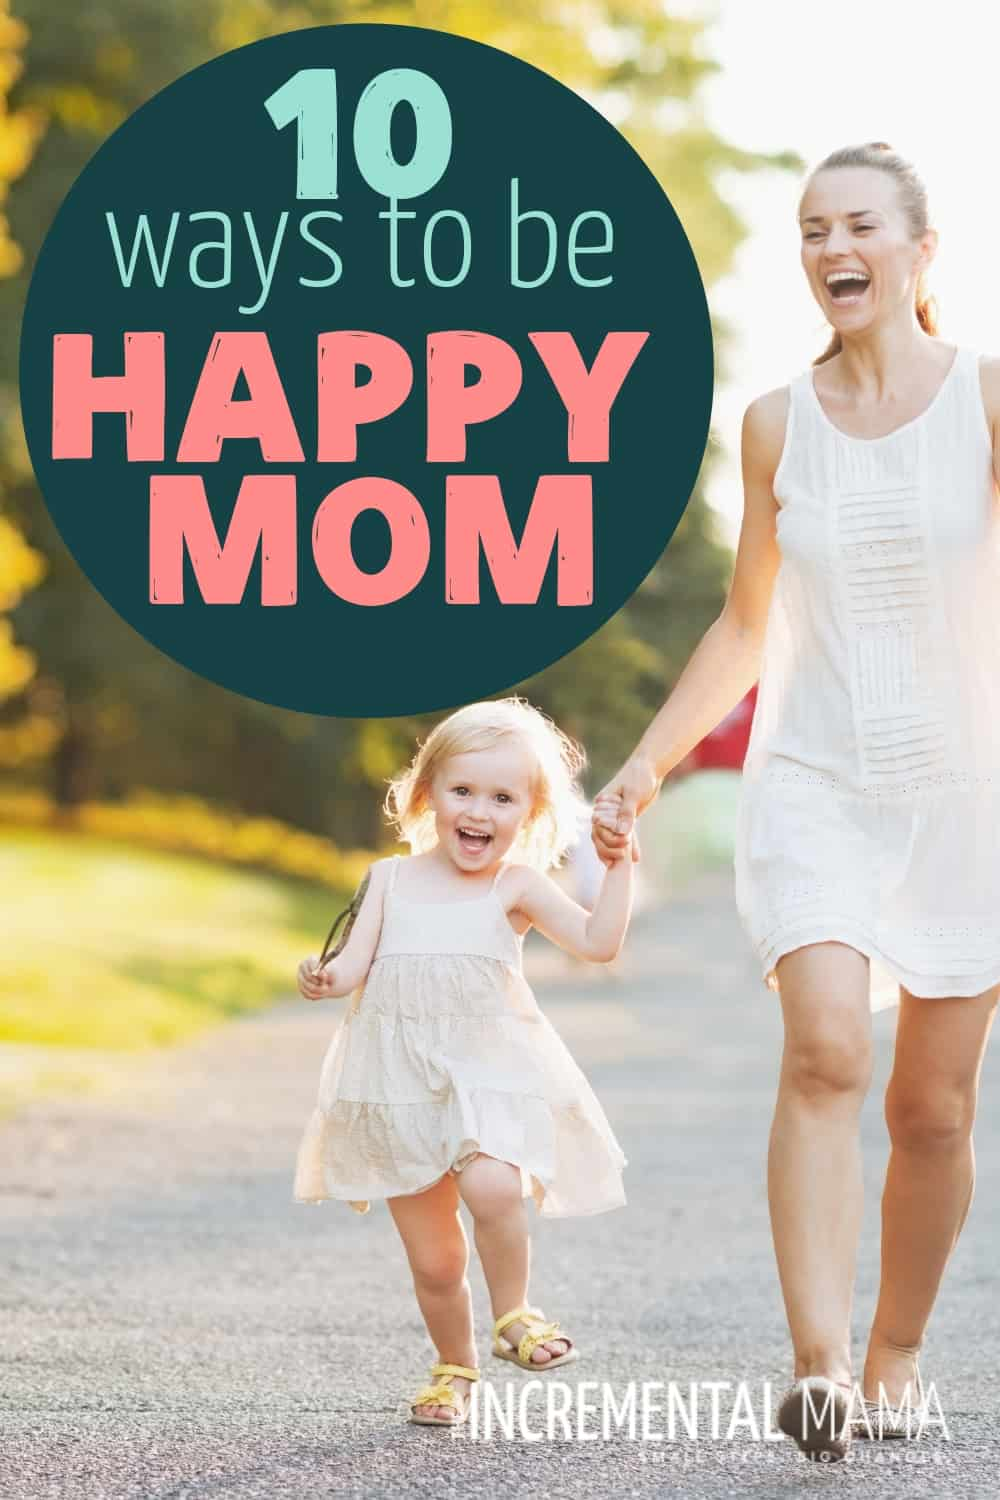 Overcome drudgery and overwhelm with these 10 quick and easy daily routines to be a happy mom. #beahappymom #tipsformomsofyoungchildren #momroutine